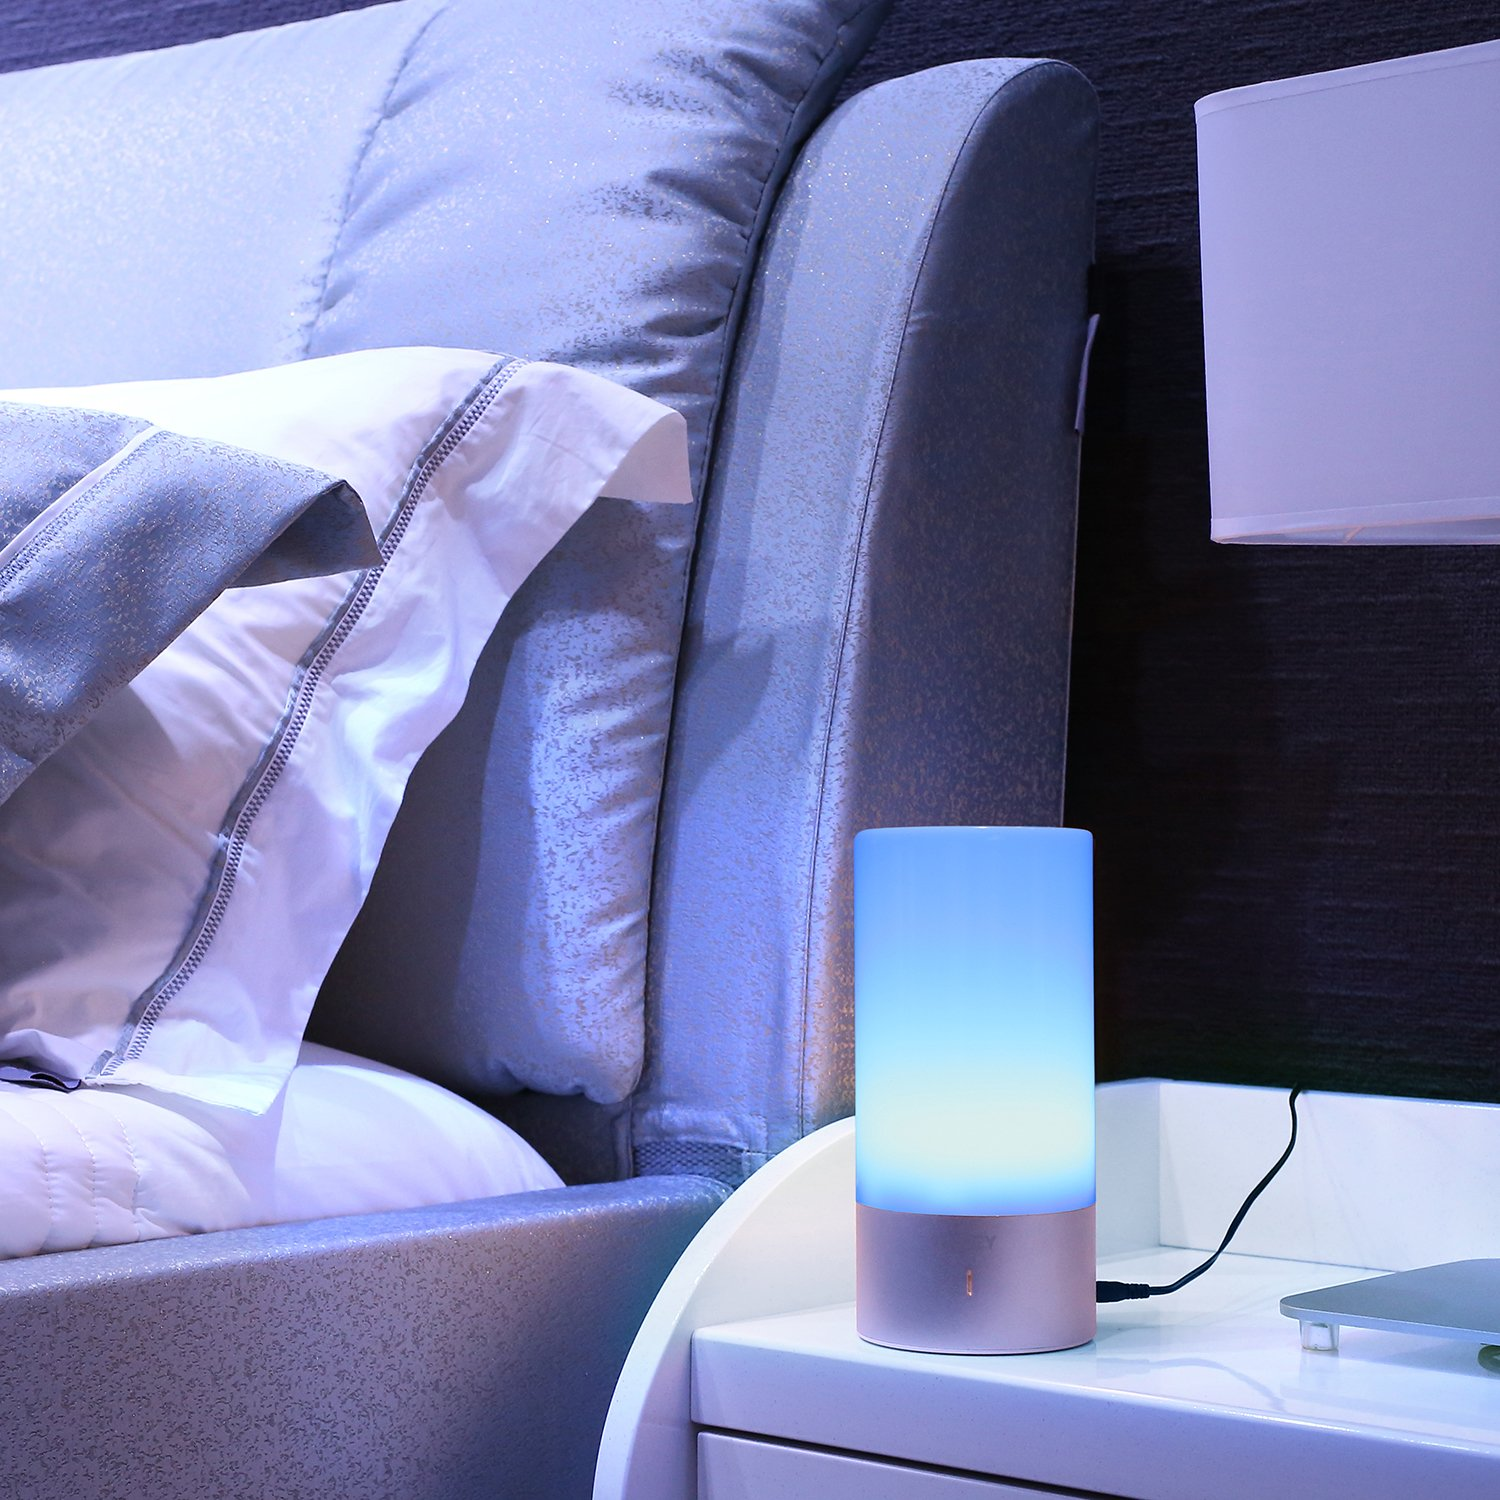 AUKEY Table Lamp, Touch Sensor Bedside Lamps + Dimmable Warm White Light & Color Changing RGB for Bedrooms by AUKEY (Image #10)